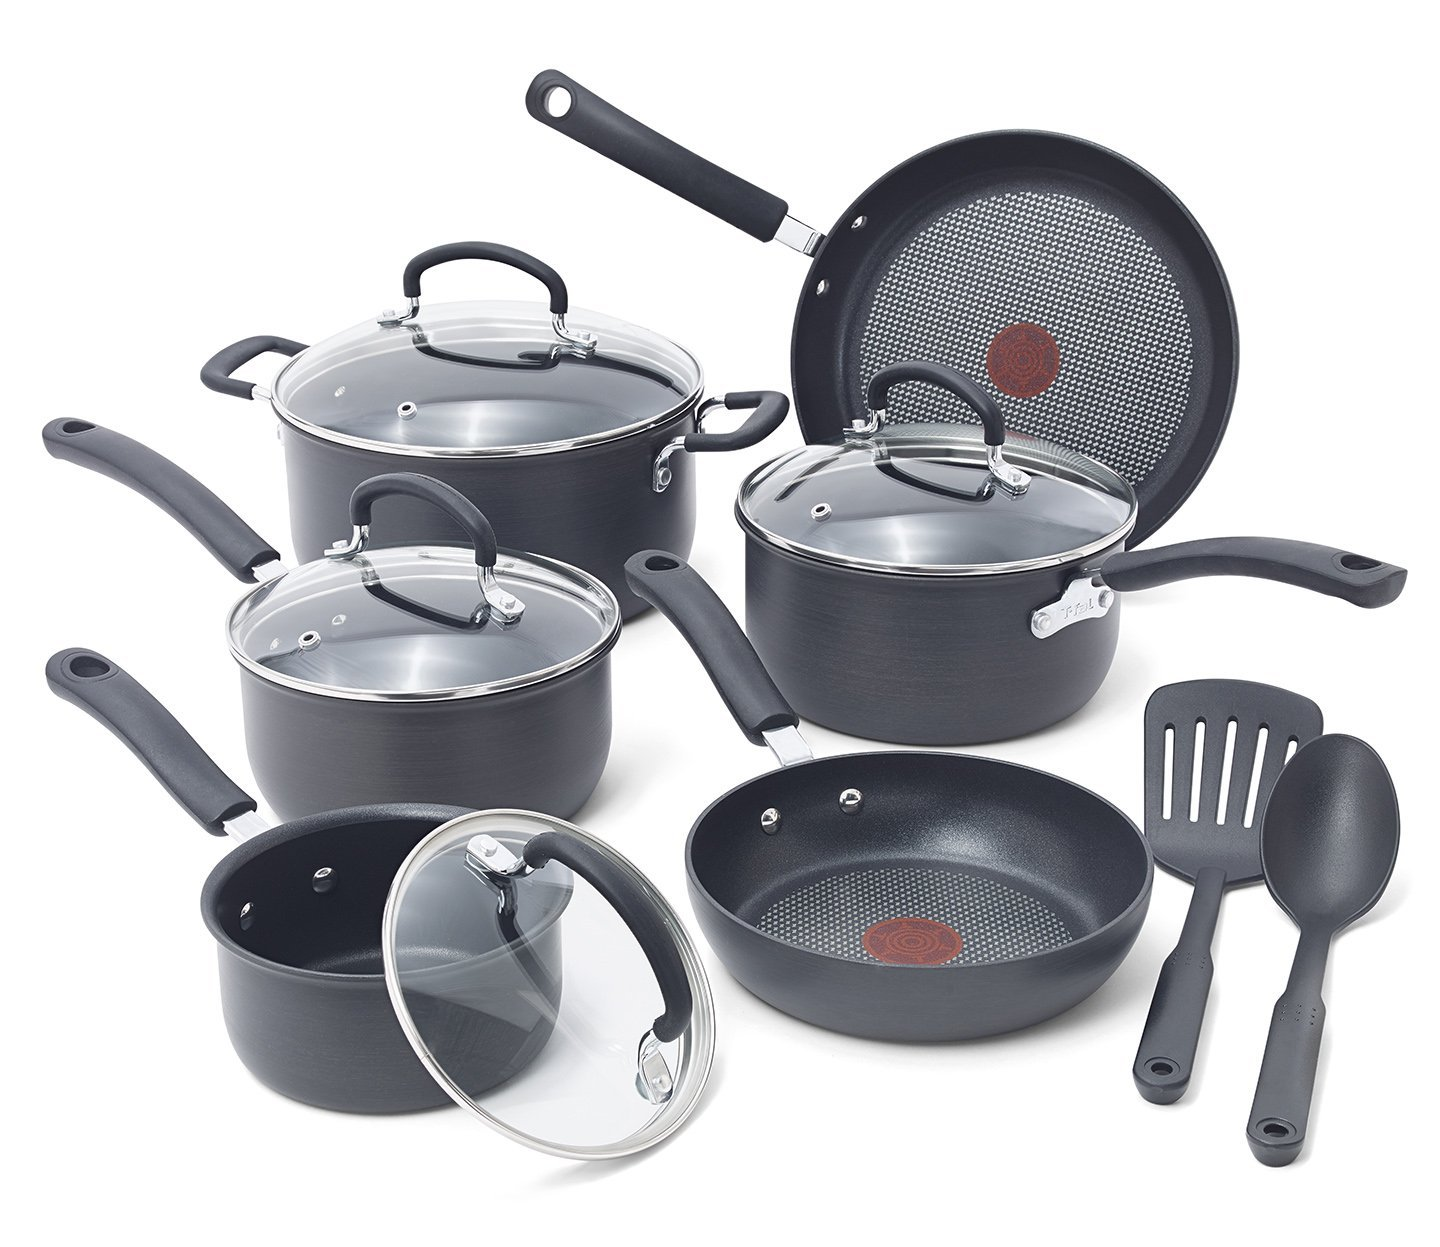 T Fal Ultimate Hard Anodized Cookware Set Reviews E765sc